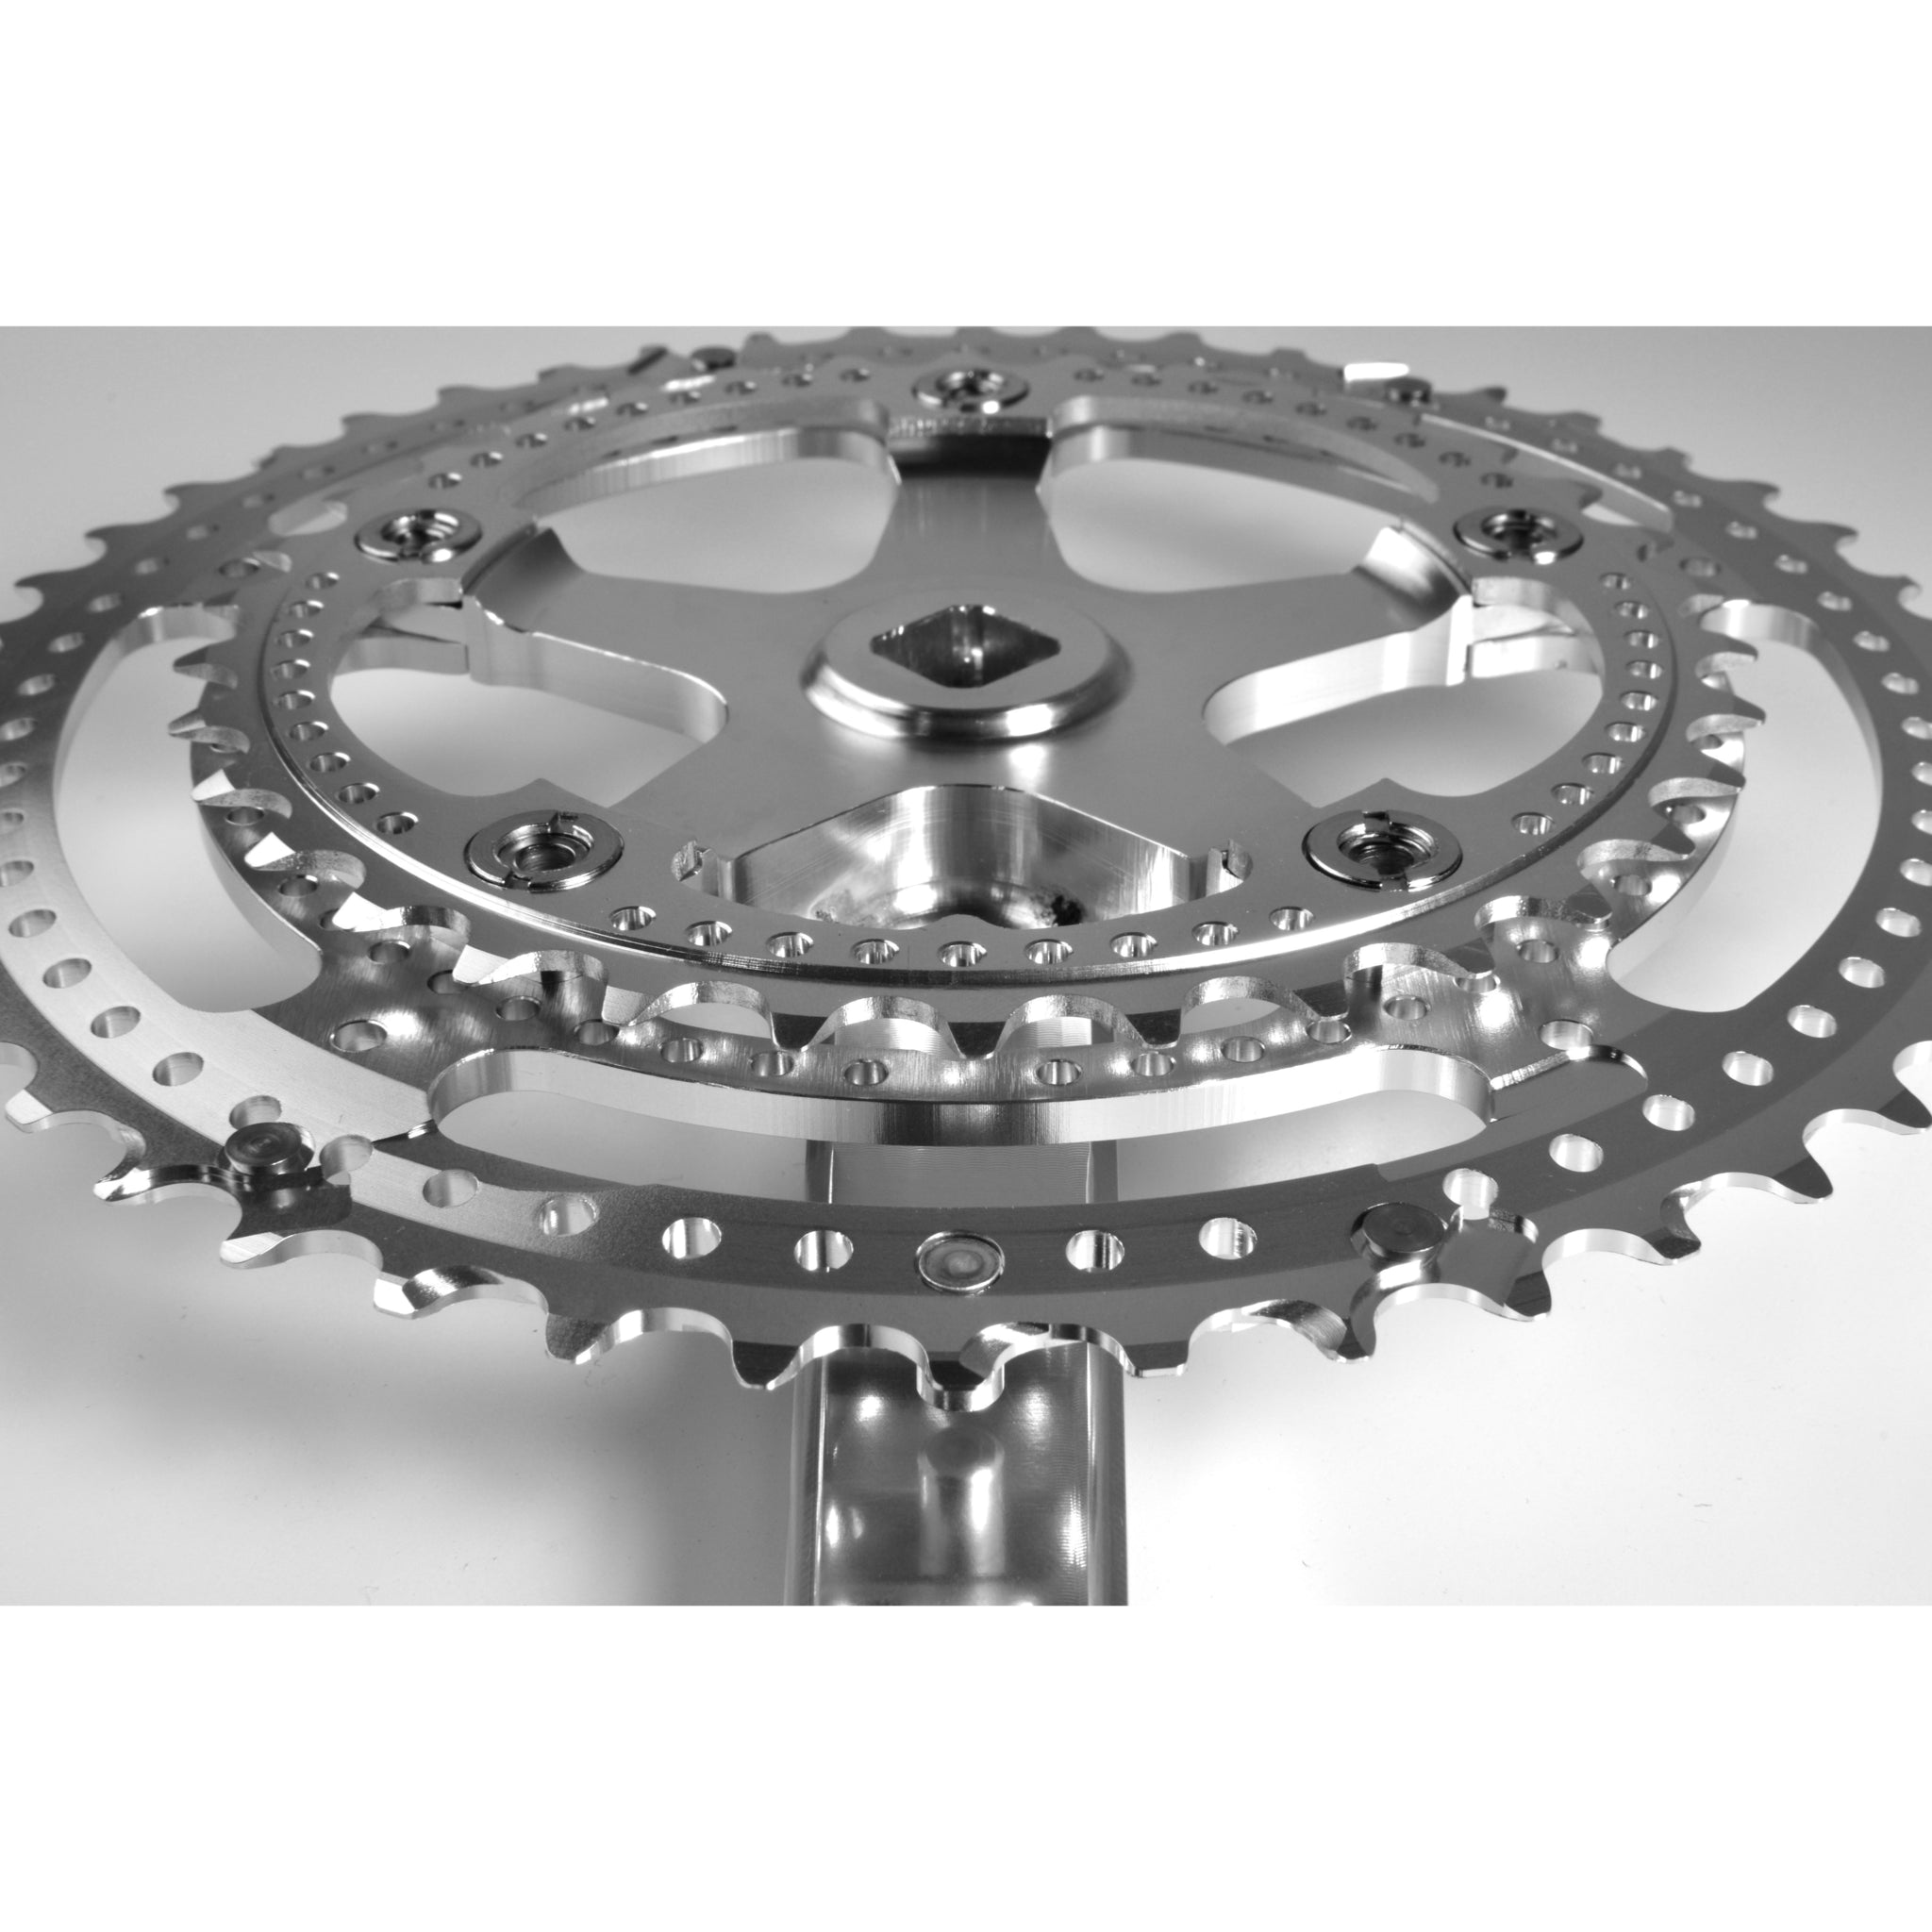 Grand Cru Drillium 110 Fluted Double Crankset